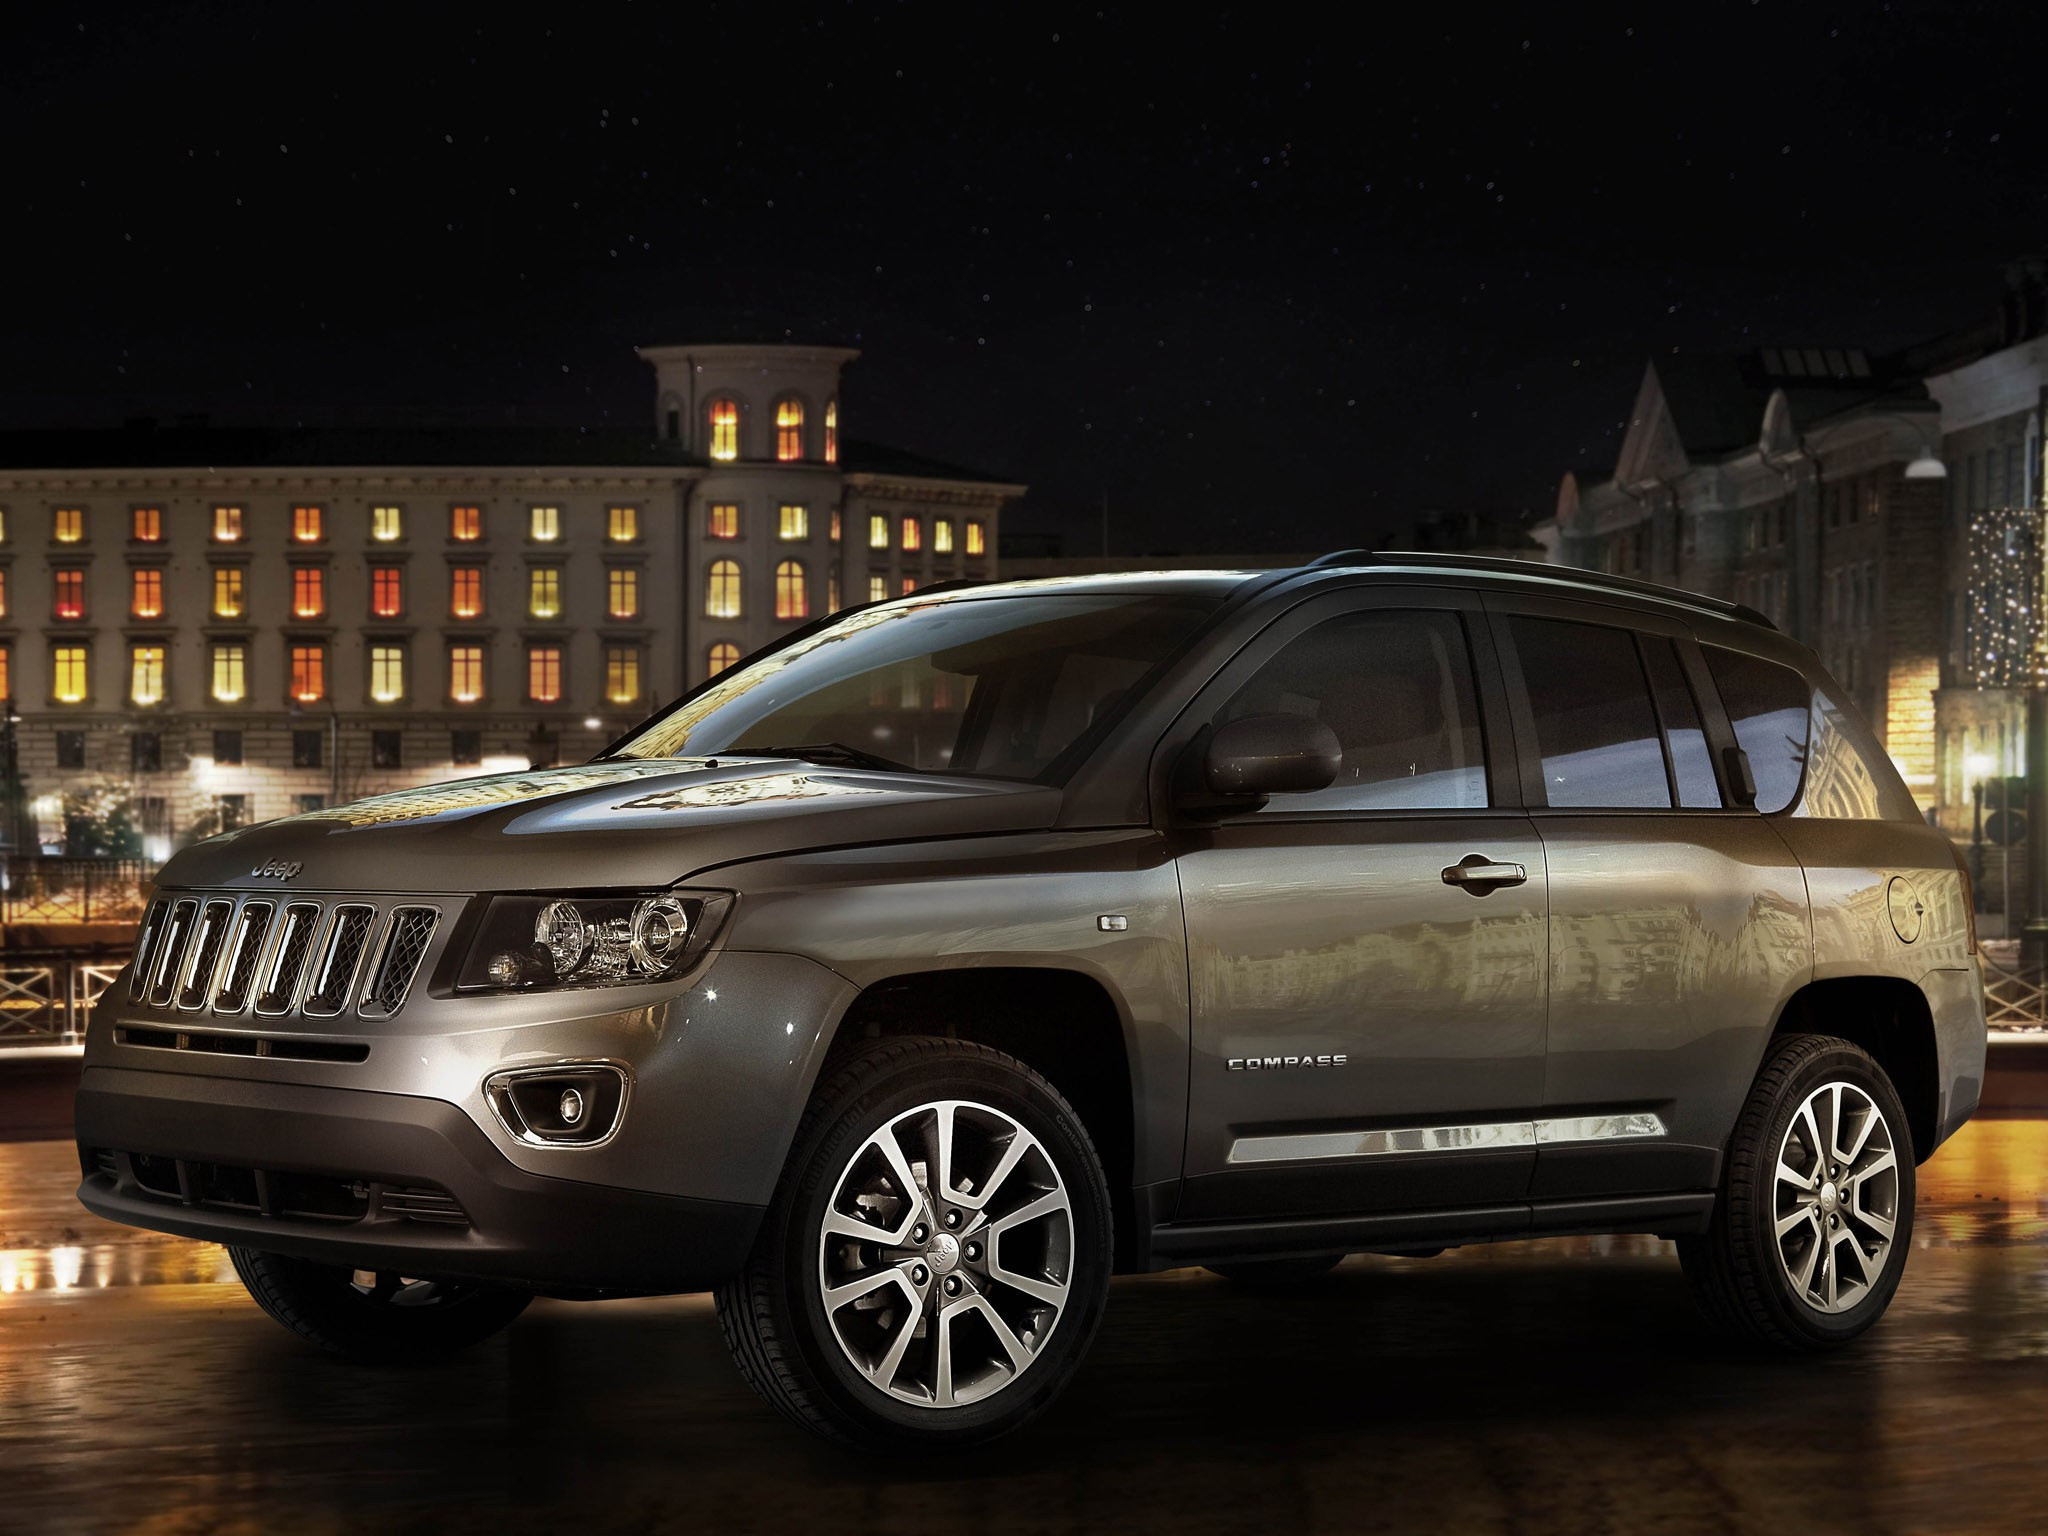 2013 Jeep Compass Europe